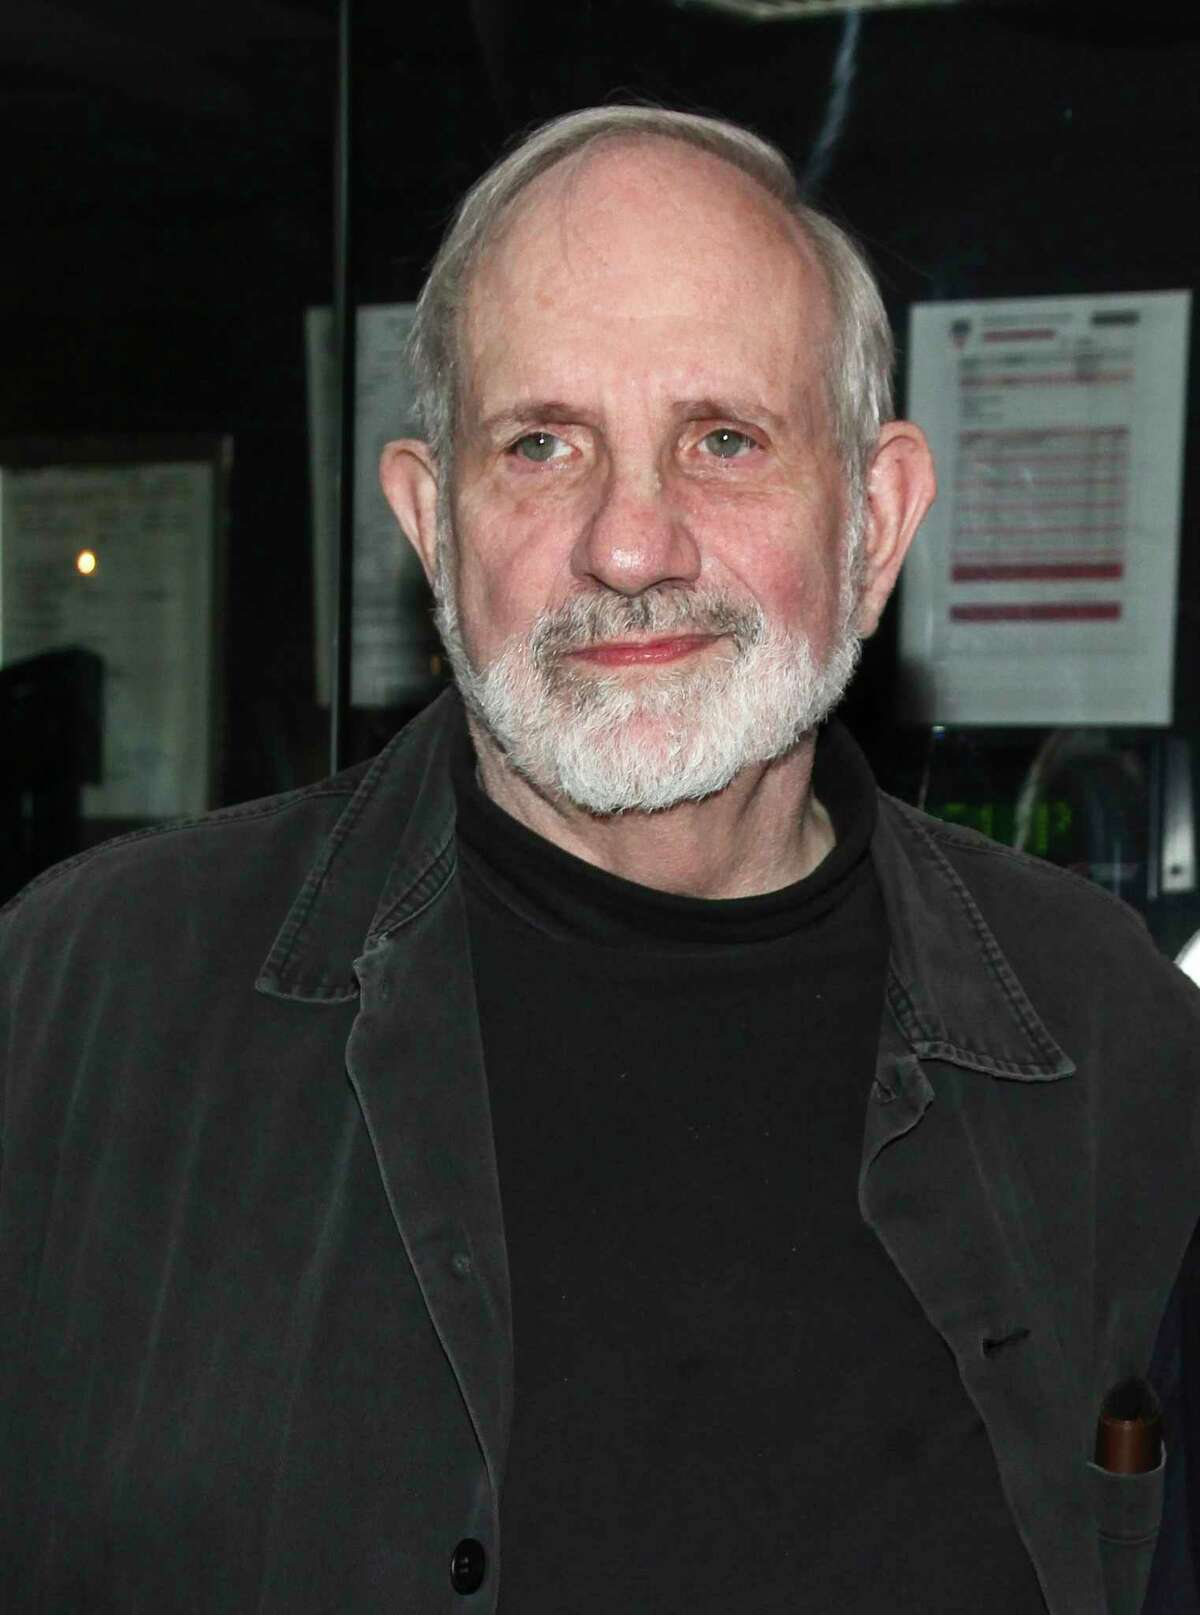 FILE - In this June 9, 2016, file photo, Brian De Palma attends a special screening of